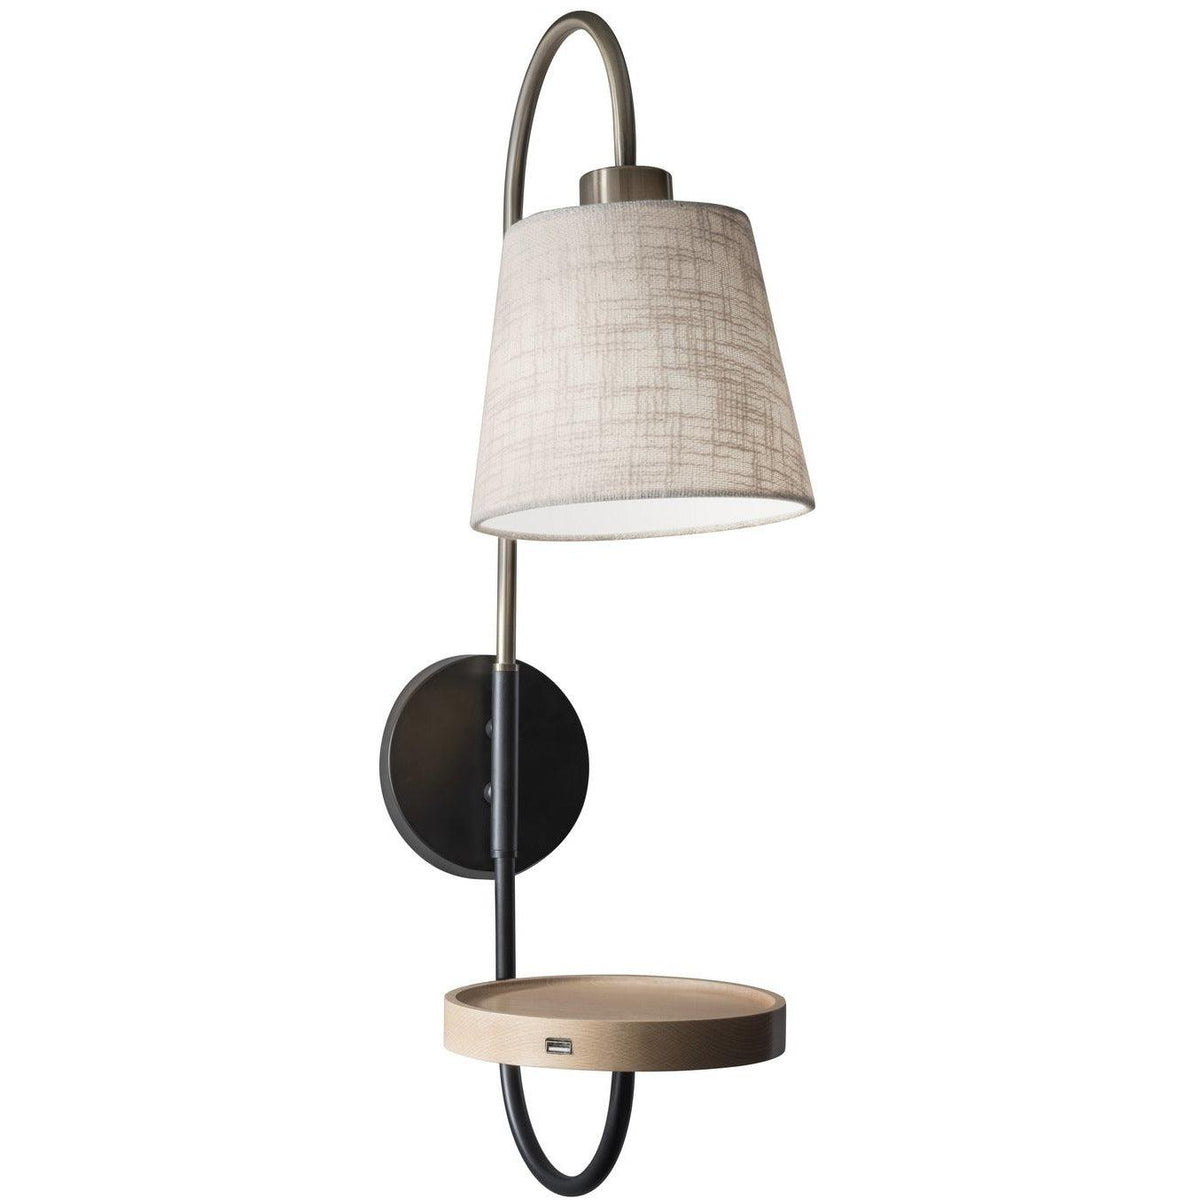 Adesso Home - 3406-21 - One Light Wall Sconce - Jeffrey - Black/Antique Brass